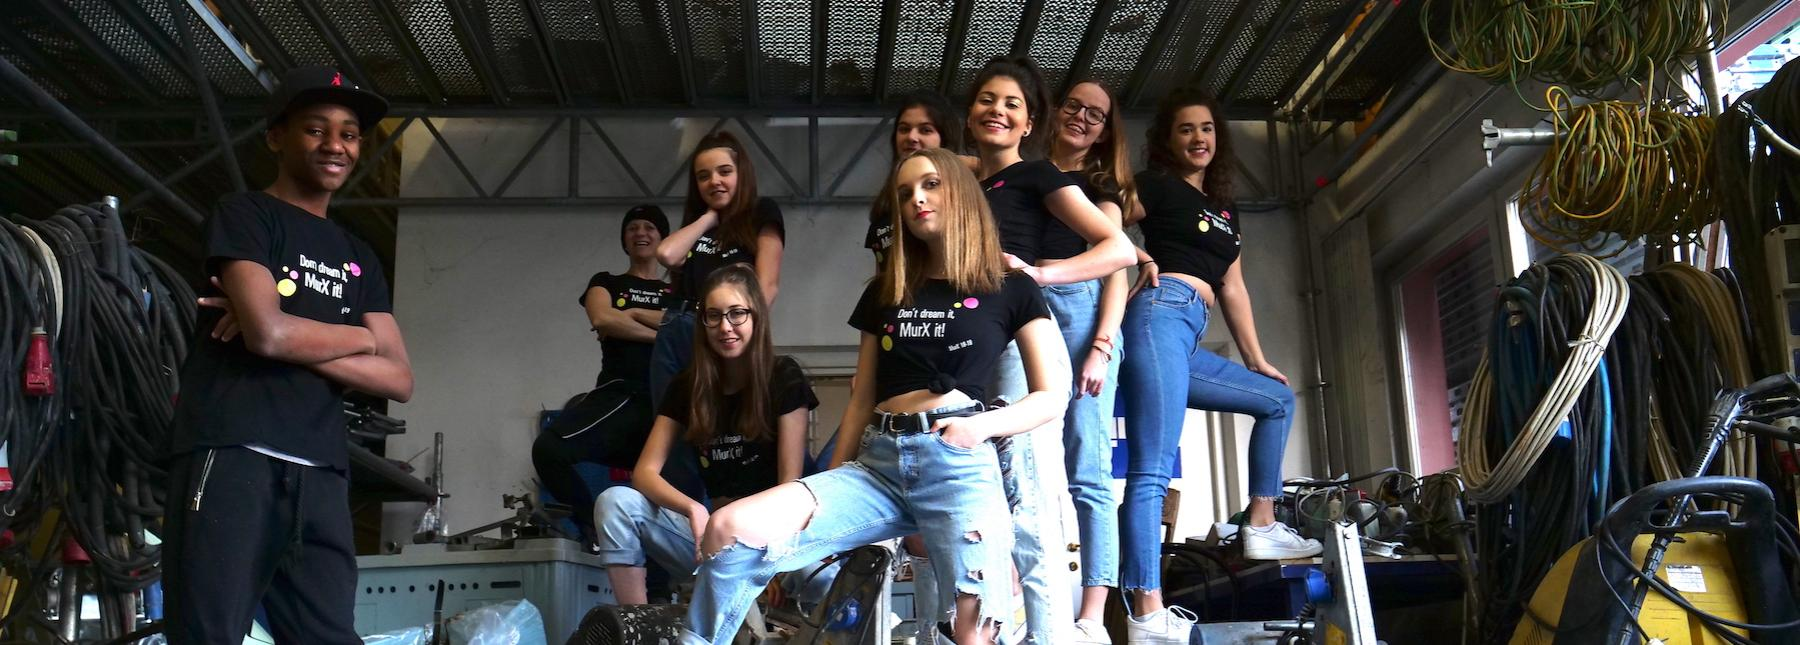 eventbild_hip_hop_video_clip_teens_junior